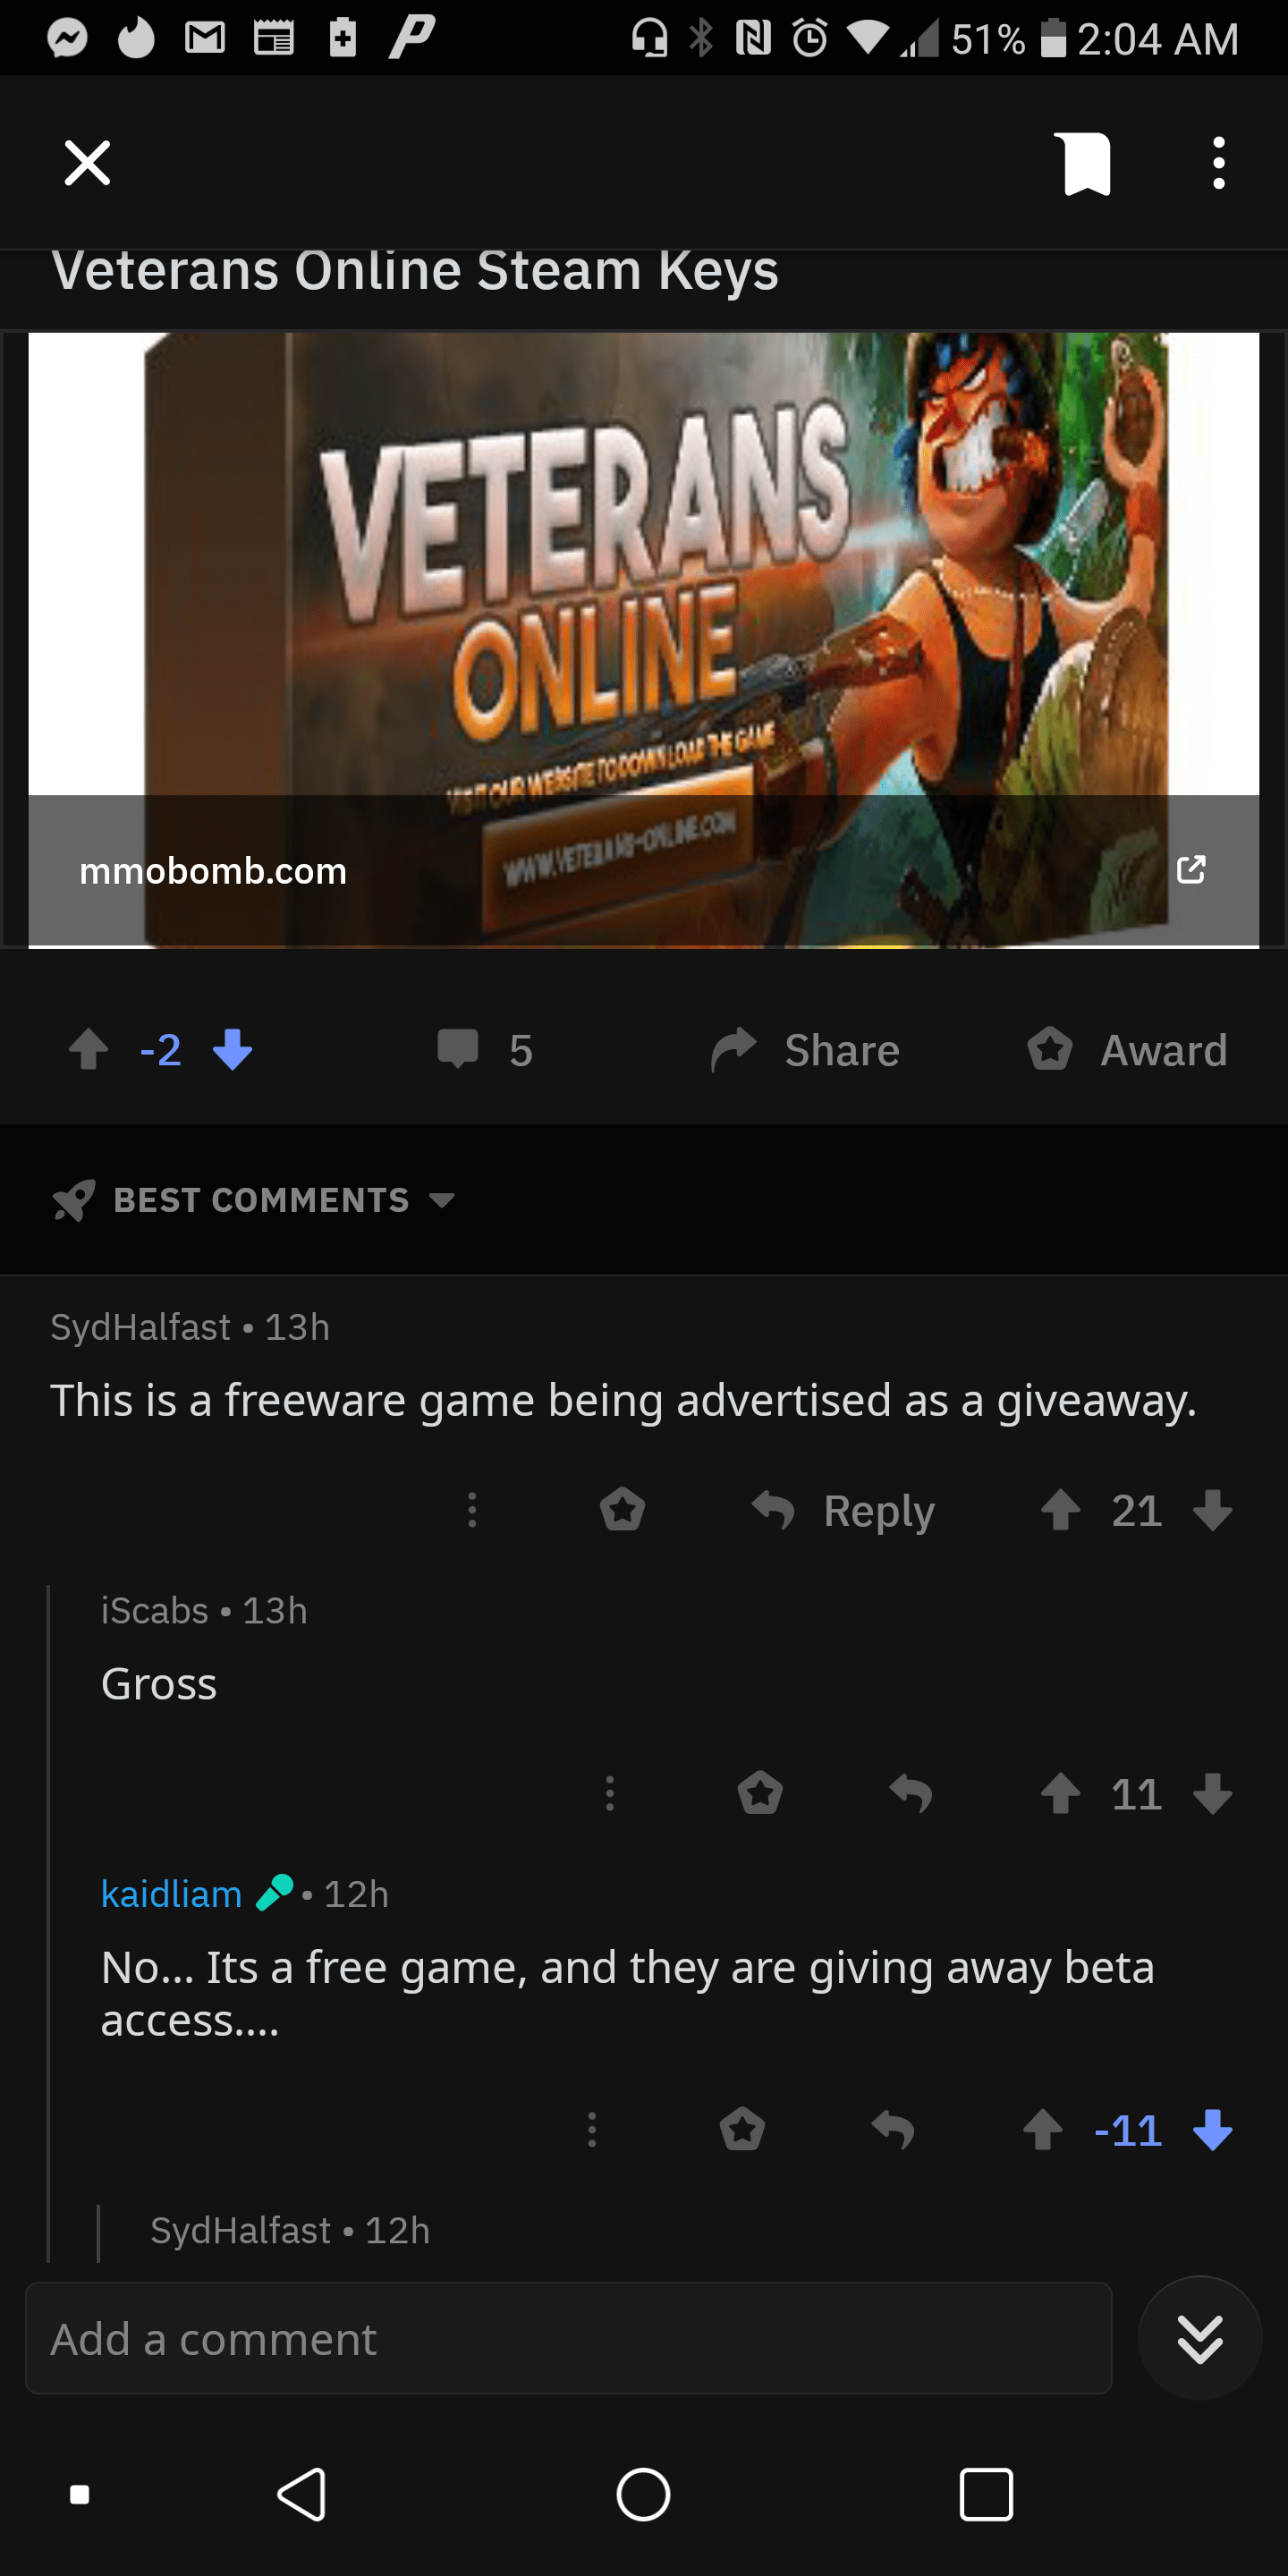 Just unsubbed from r/freegames this subreddit is full of cancerous spam. Waste of time trying to look for a free game. : JustUnsubbed